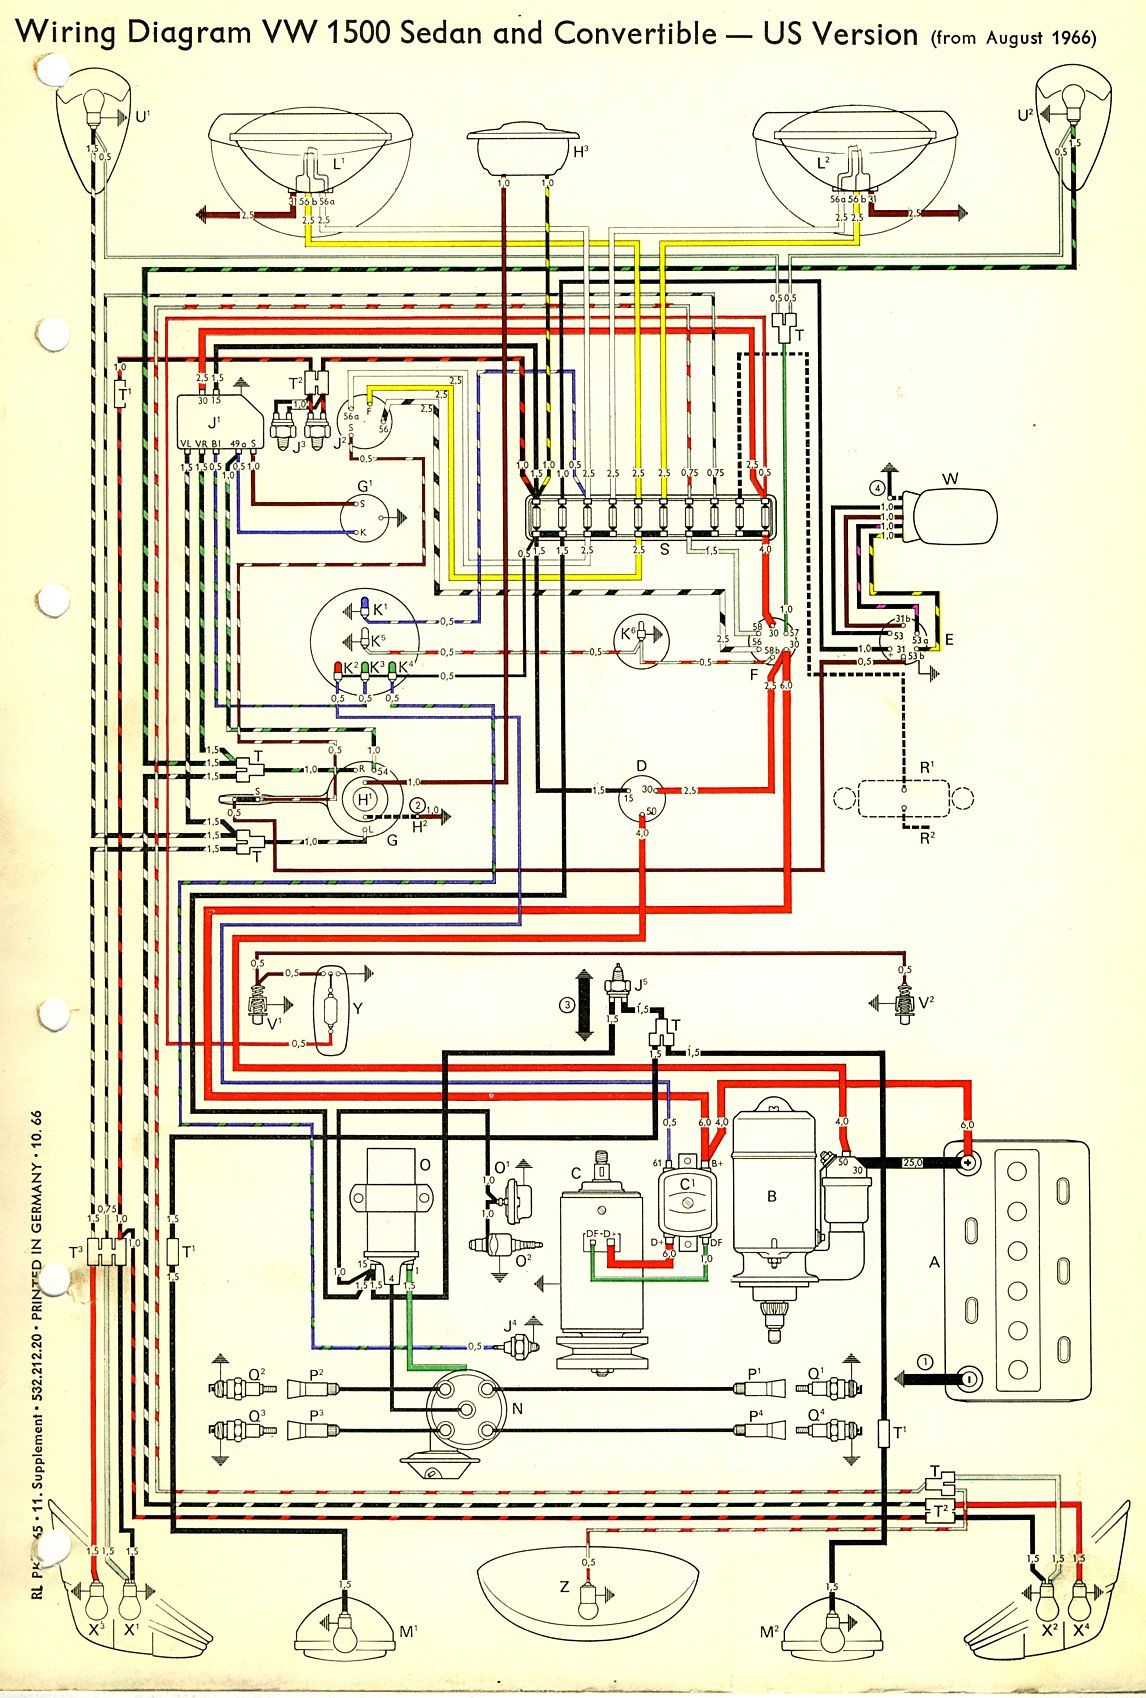 1adf990c0efb617c789fdd21338448b0 1967 beetle wiring diagram (usa) thegoldenbug com best 1967 vw 1971 vw bus wiring diagram at honlapkeszites.co